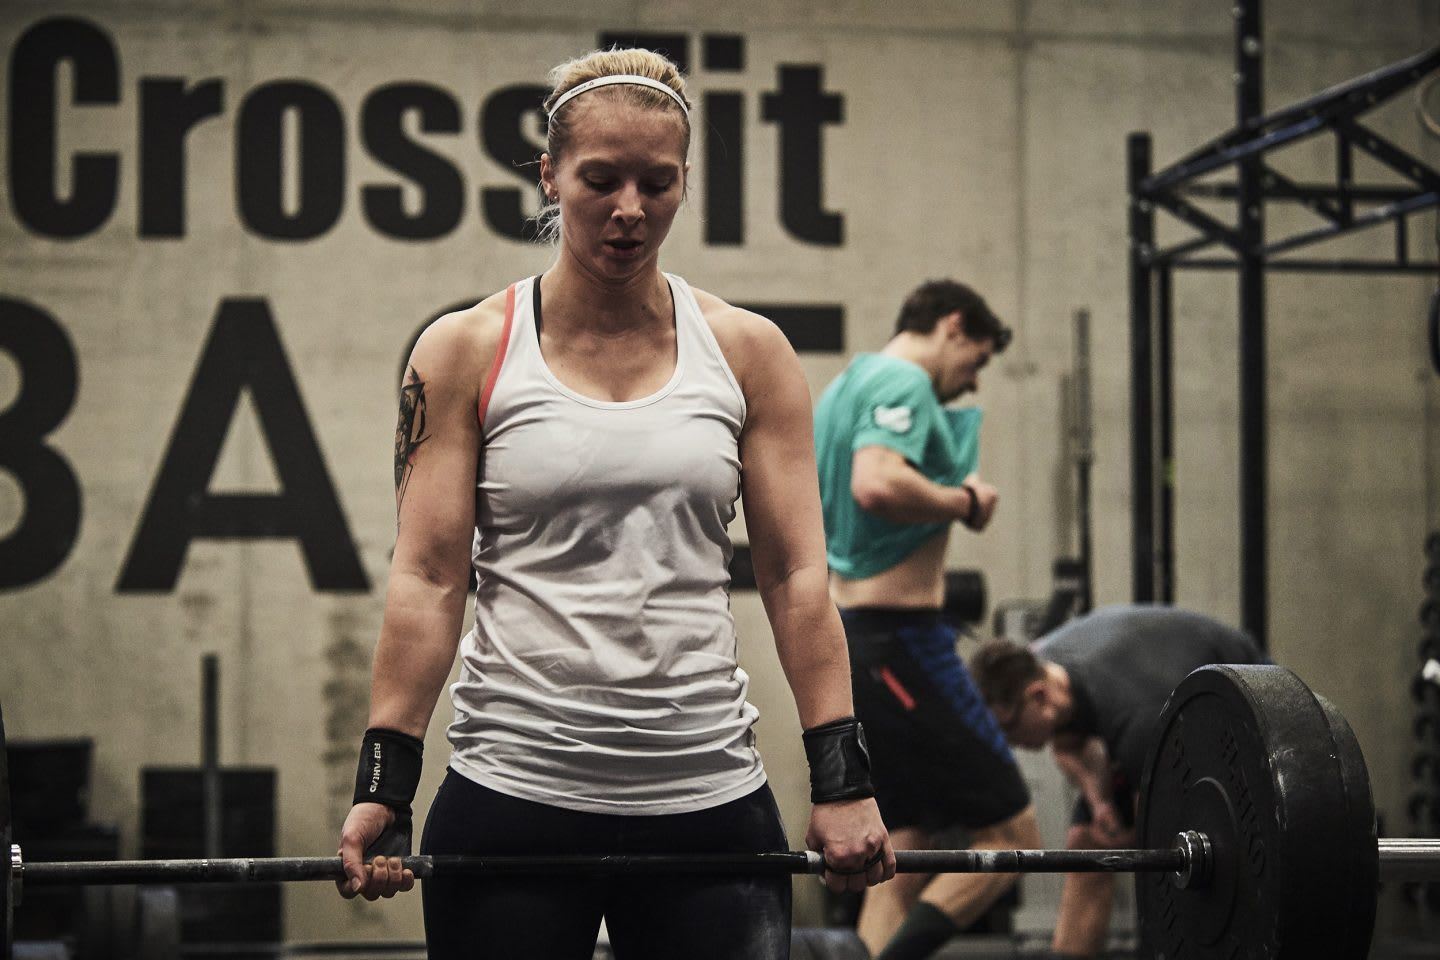 crossfit woman athlete weight lifting motivation